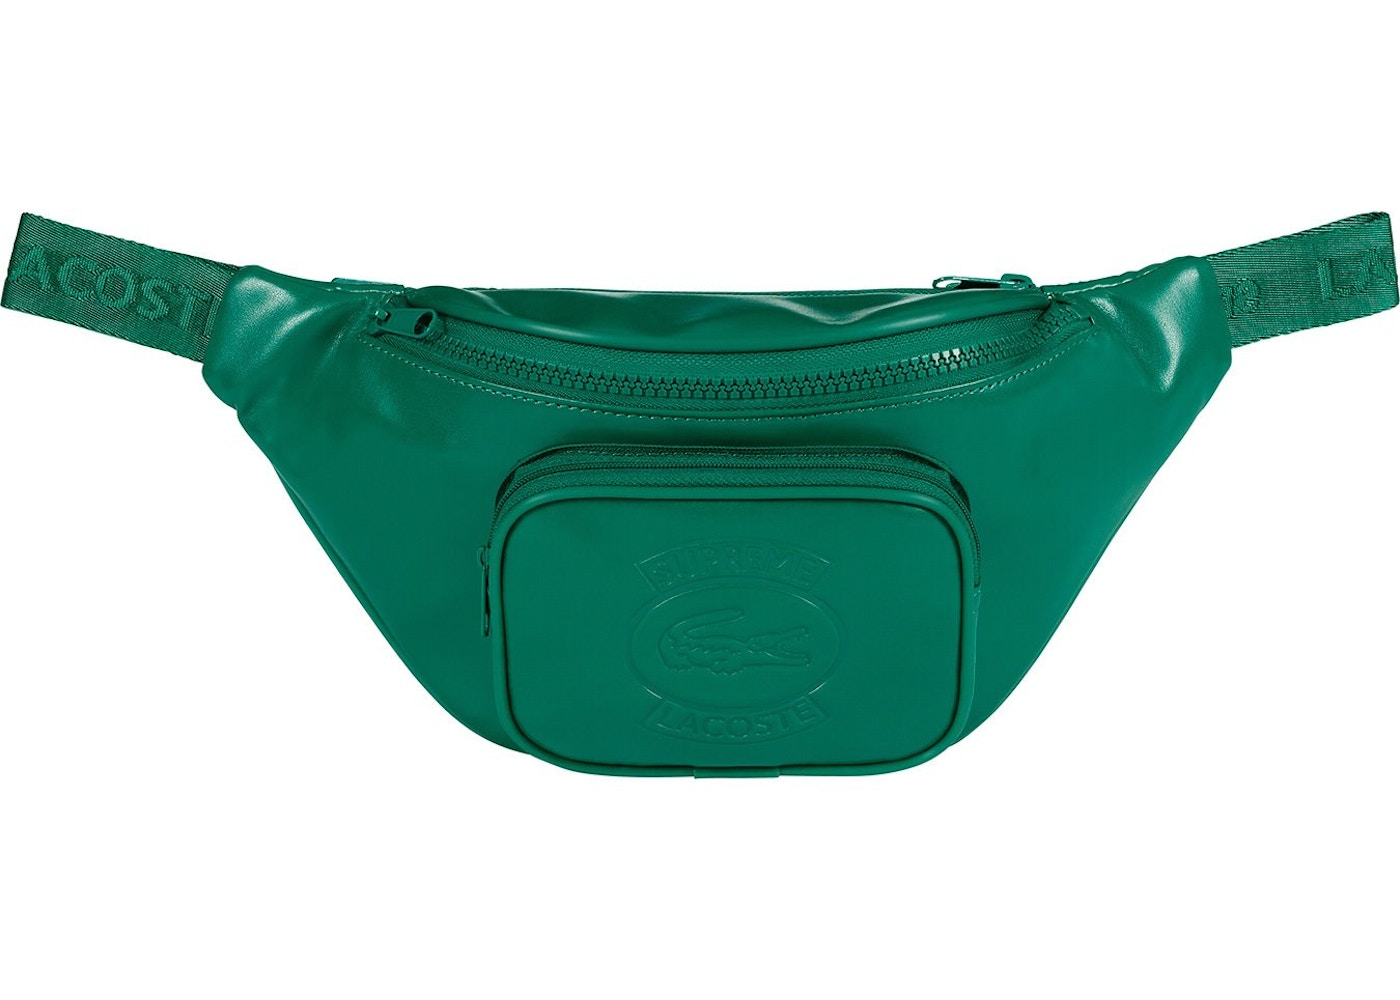 fbdc7b52d7fc Sell. or Ask. View All Bids. Supreme LACOSTE Waist Bag Green